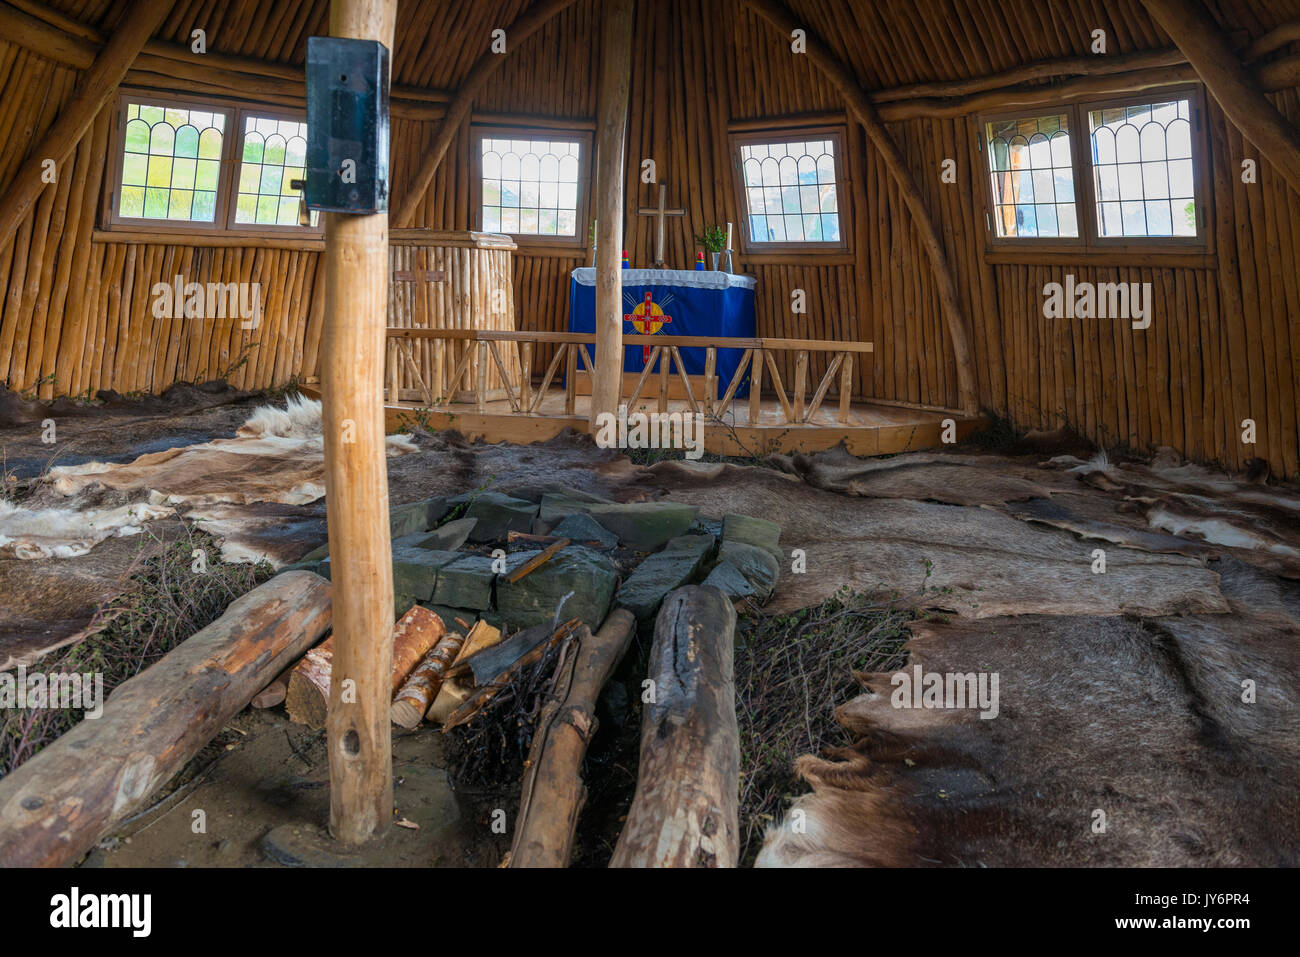 Interior of a Sami church goahti in Staloluokta in Swedish Lapland. The floor is covered with reindeer fur, and there is a fireplace. - Stock Image